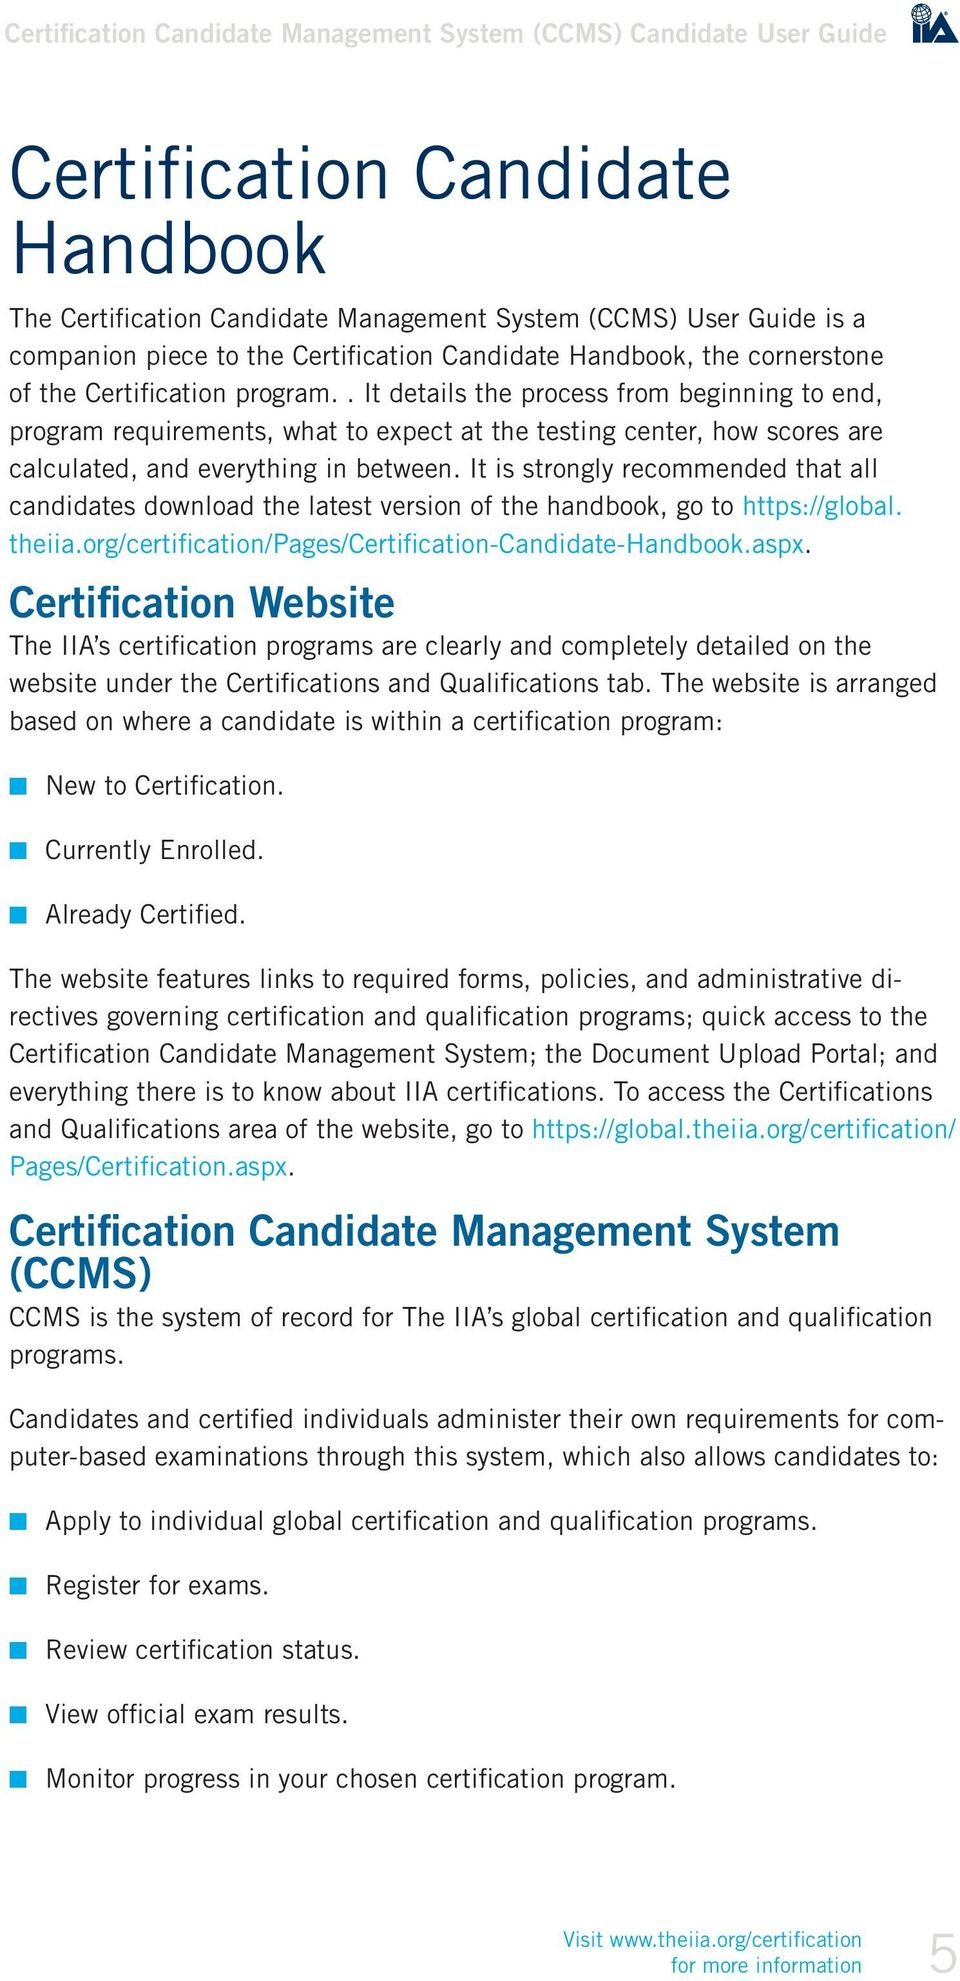 It is strongly recommended that all candidates download the latest version of the handbook, go to https://global. theiia.org/certification/pages/certification-candidate-handbook.aspx.